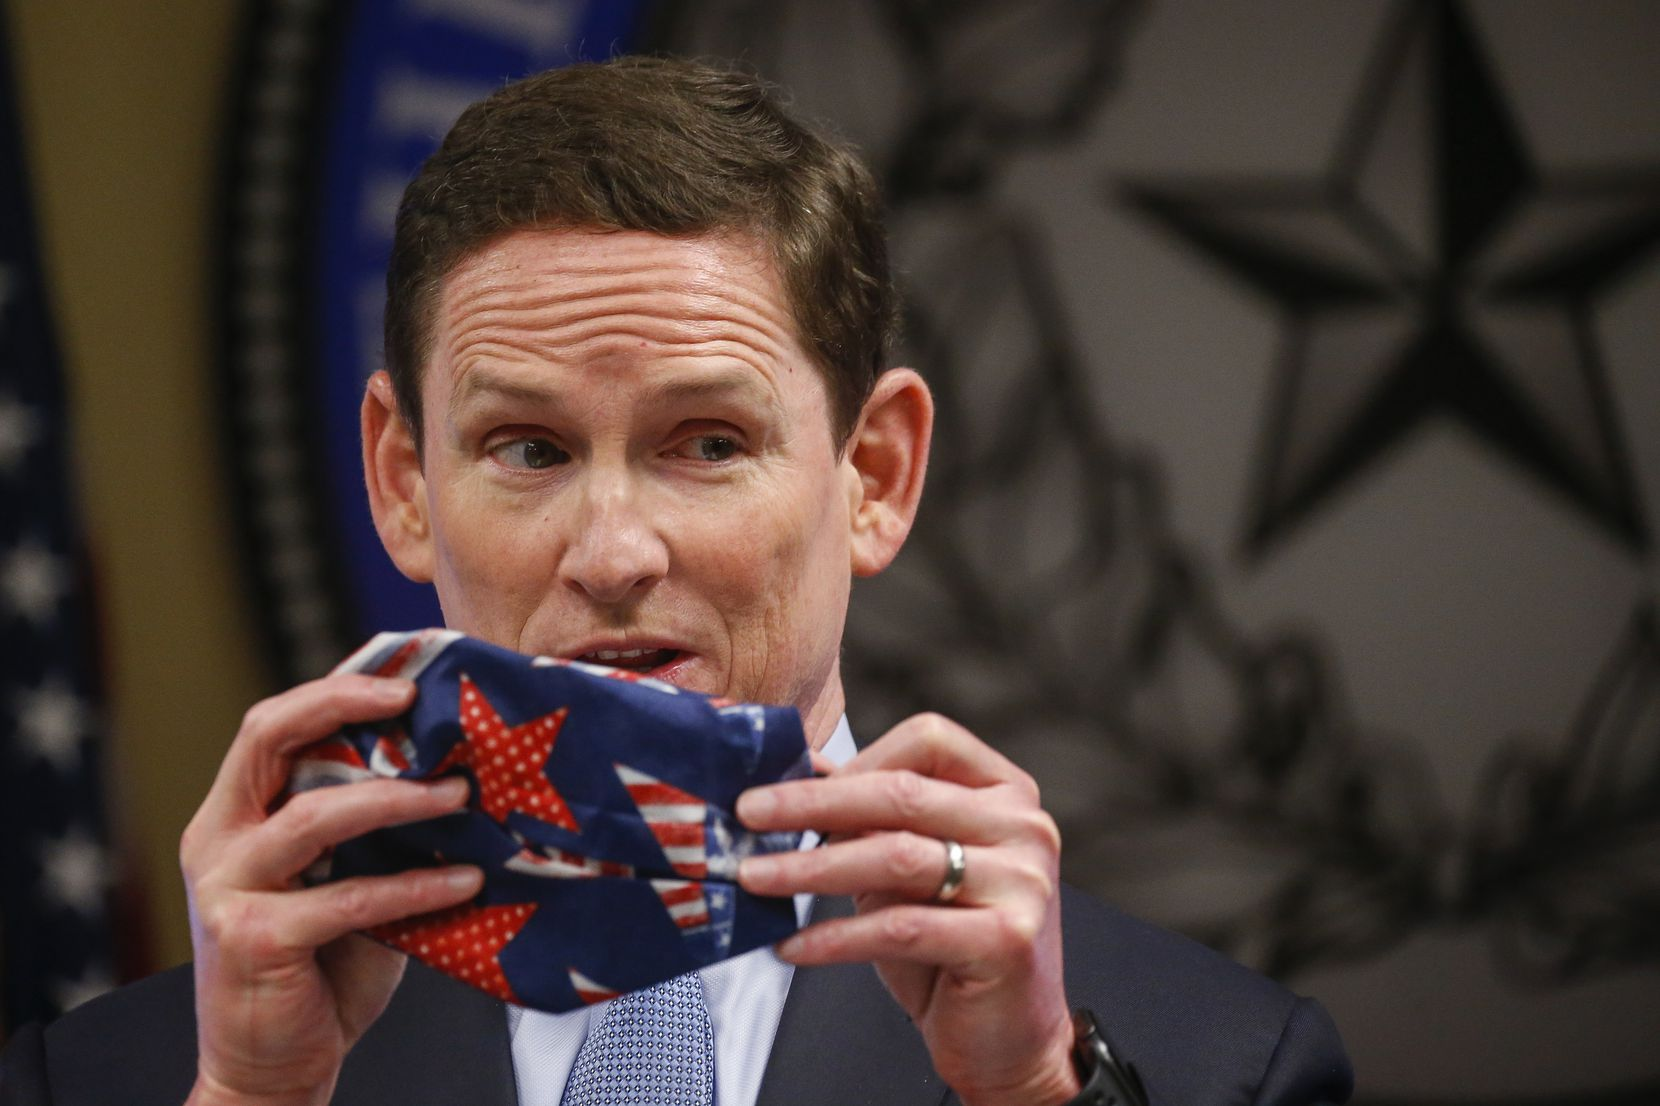 Dallas County Judge Clay Jenkins displays an improvised cloth face mask made with a bandana and hair ties as he addresses members of the media regarding the new coronavirus pandemic on Wednesday, April 8, 2020 at the Dallas County Emergency Operations Center in Dallas.